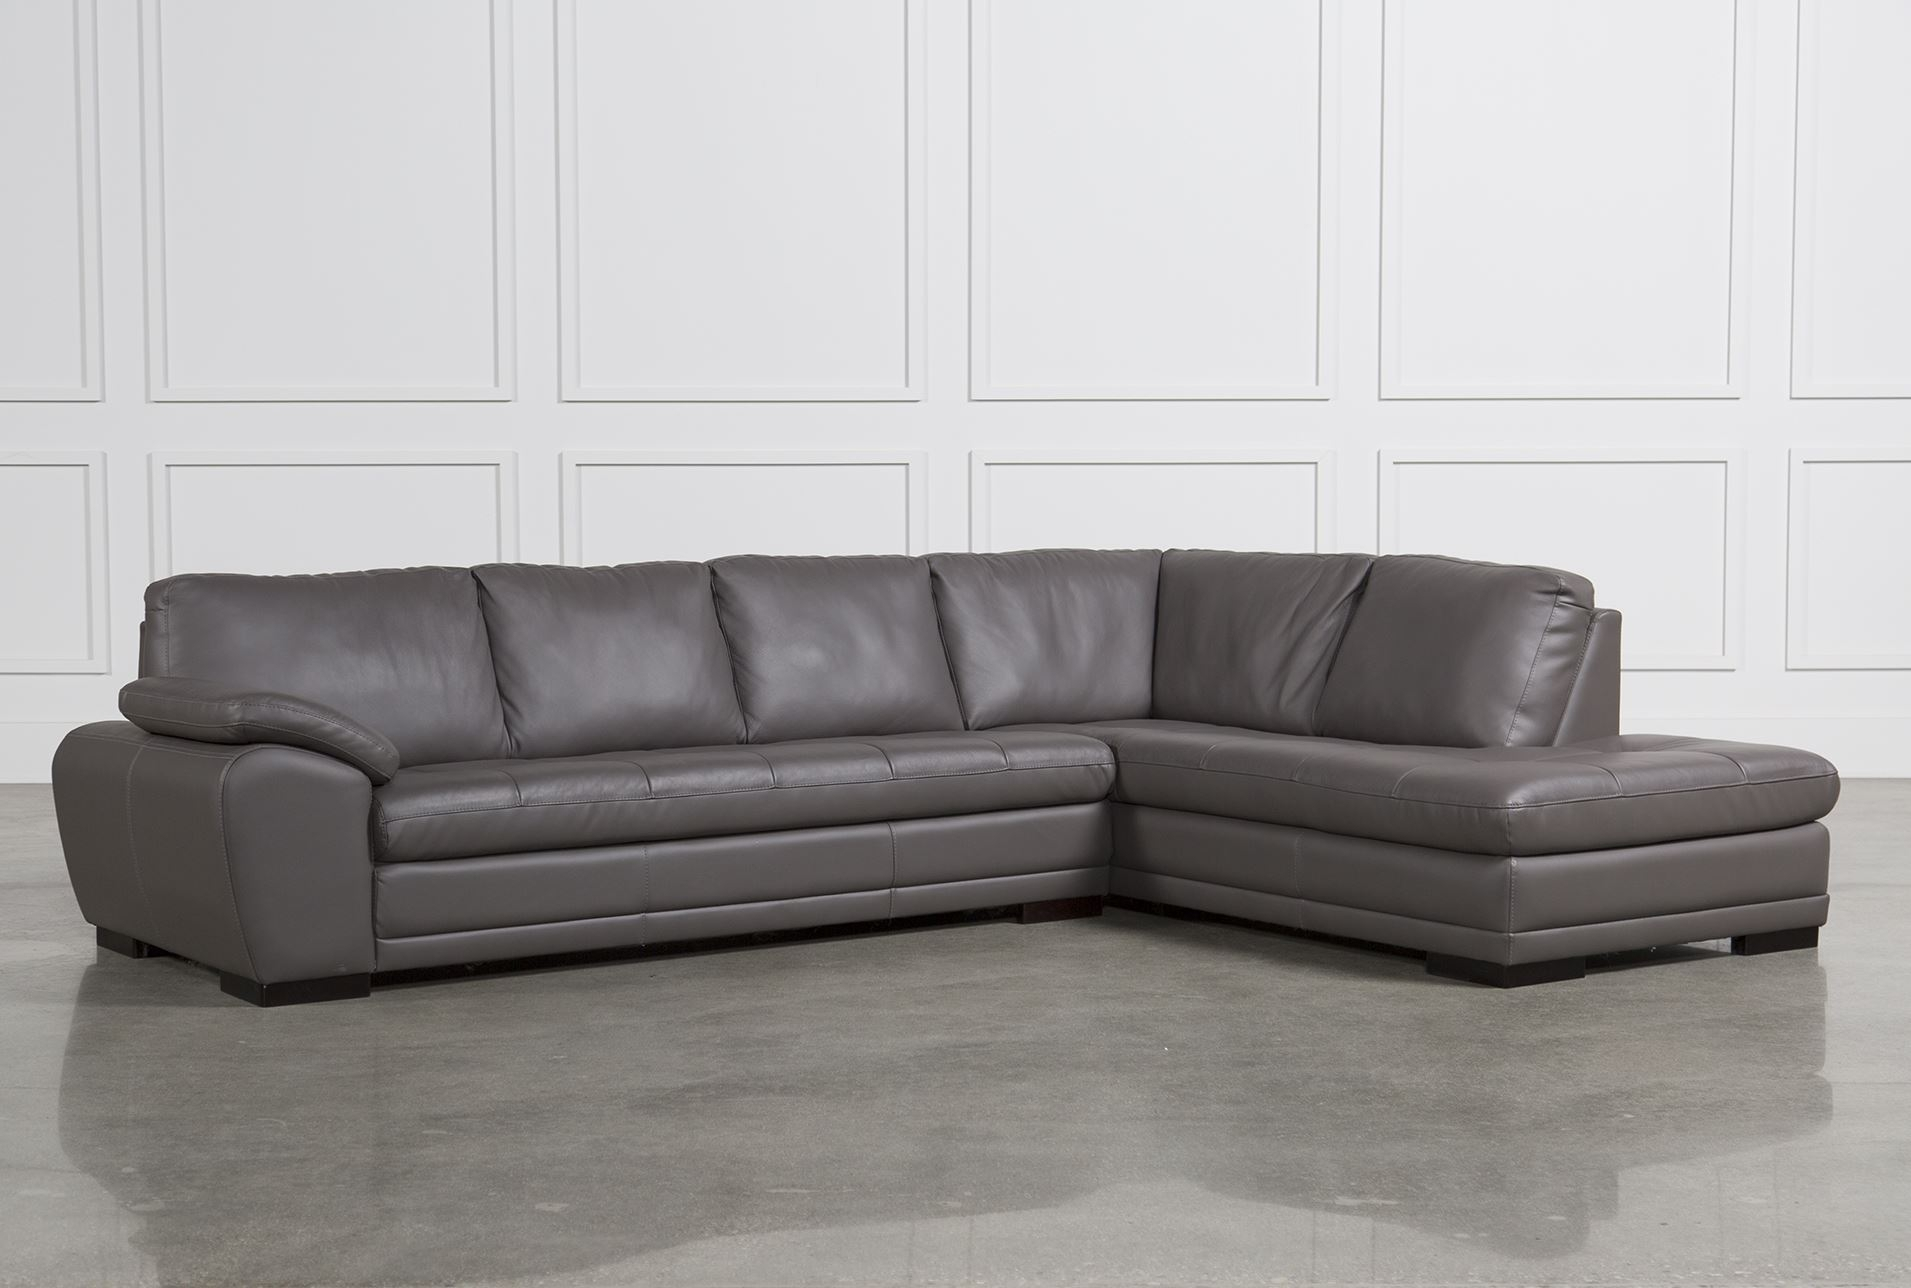 Excellent Leather Sectional Sofas For Vaughn Granite 2 Piece Inside Living Spaces Sectional Sofas (Photo 4 of 10)